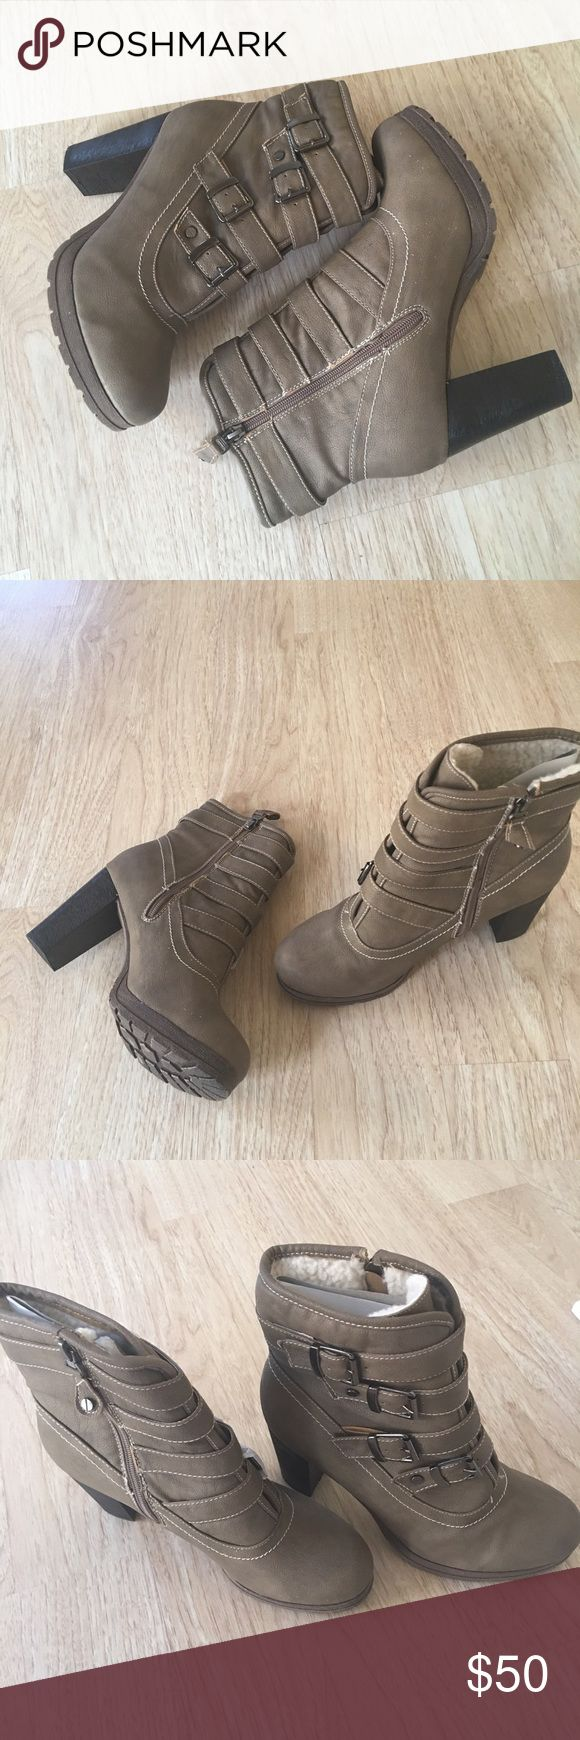 Ladies heels ankle boots, fur inside insole. NIB Very stylish, warm and comfy ankle boots for ladies, khaki color , side zipper and 4 side buckles, man made material, faux fur insole, 3 inches heels. New in box. No trades Yoki Shoes Ankle Boots & Booties